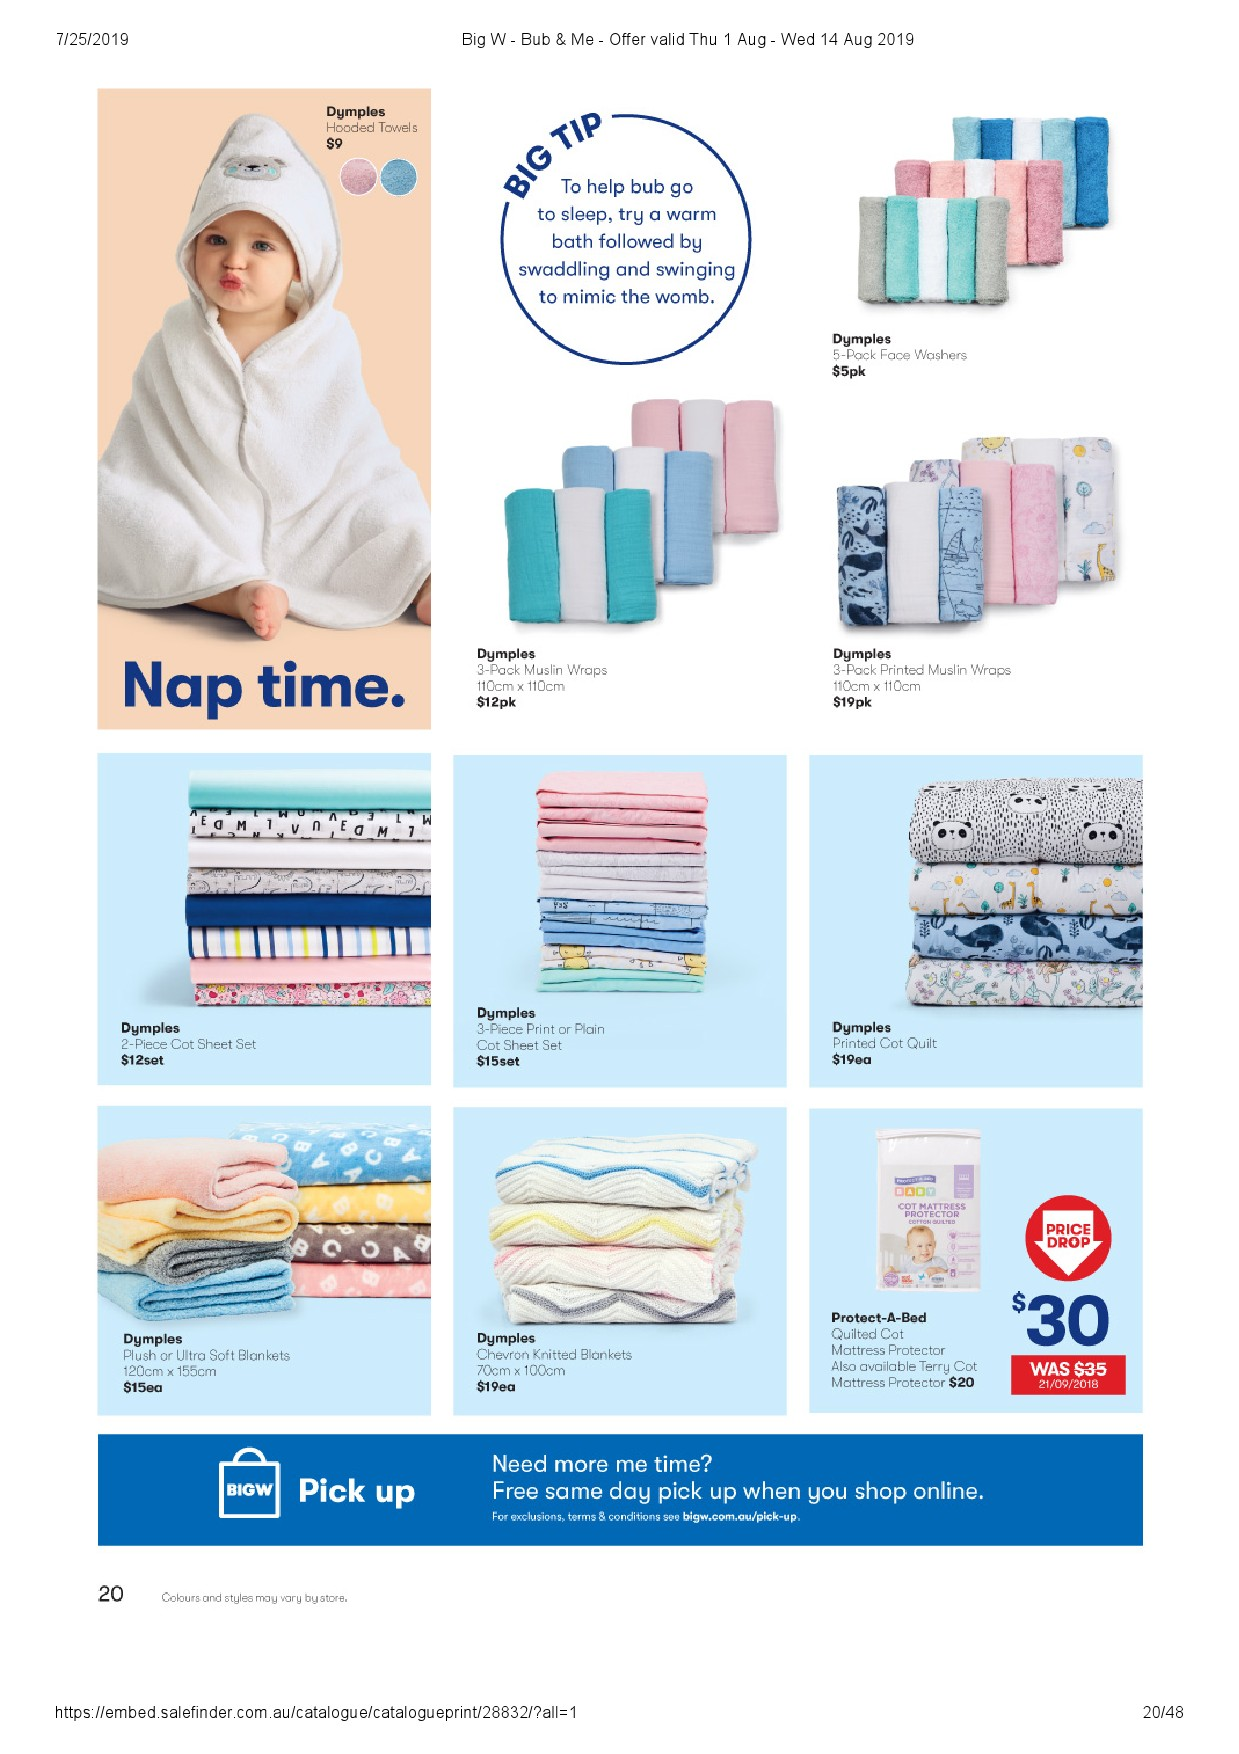 big w catalogue 1 aug 2019